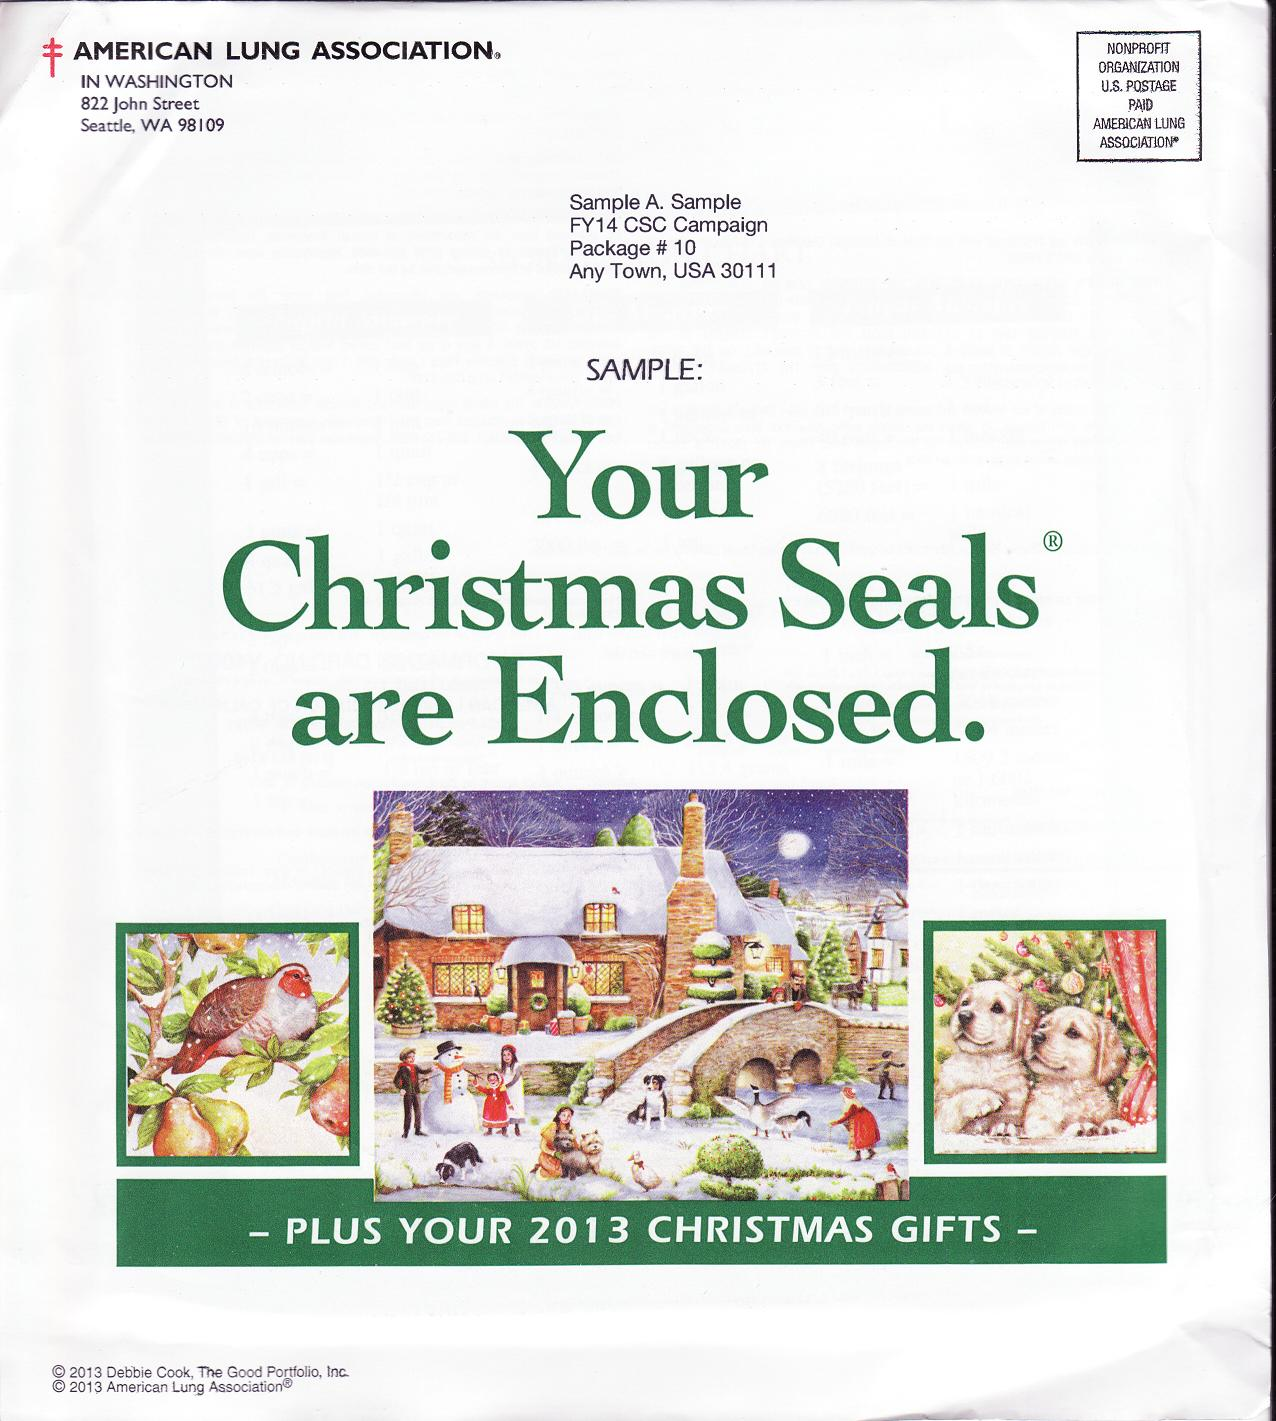 2013-T3, 2013 U.S. Test Design Christmas Seal Campaign Packet, R14CSCS10 - reverse